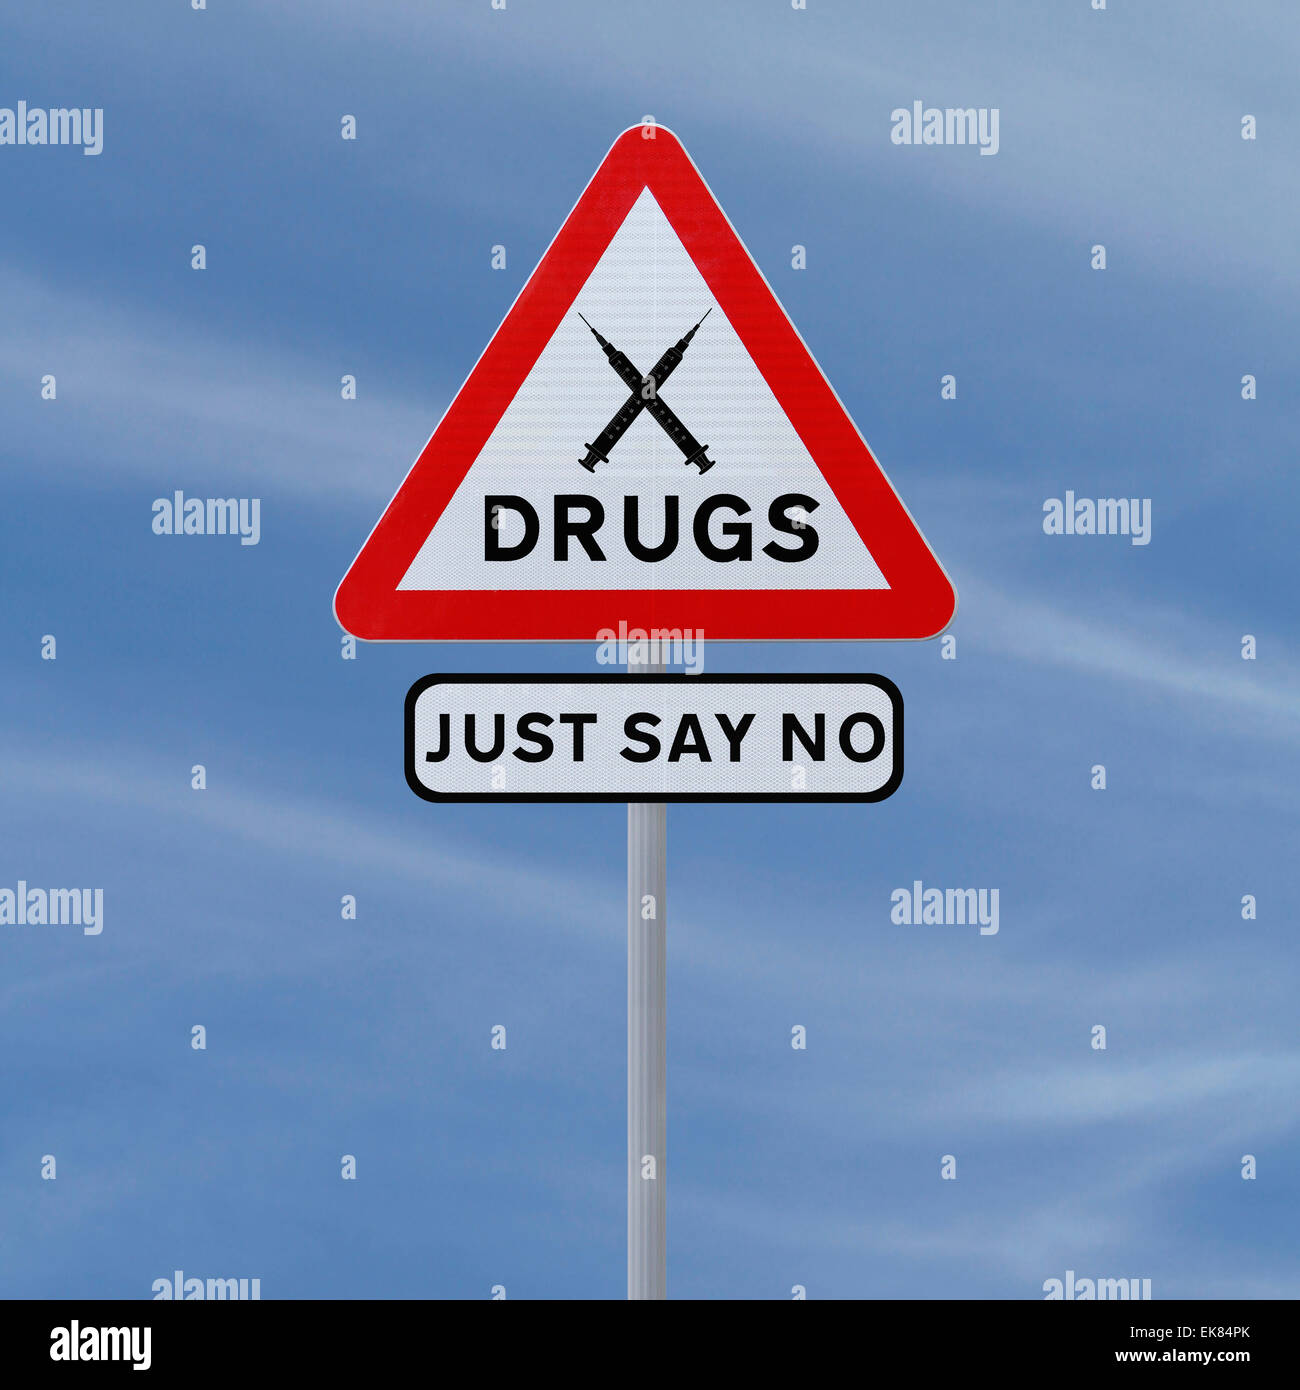 Say No To Drugs - Stock Image